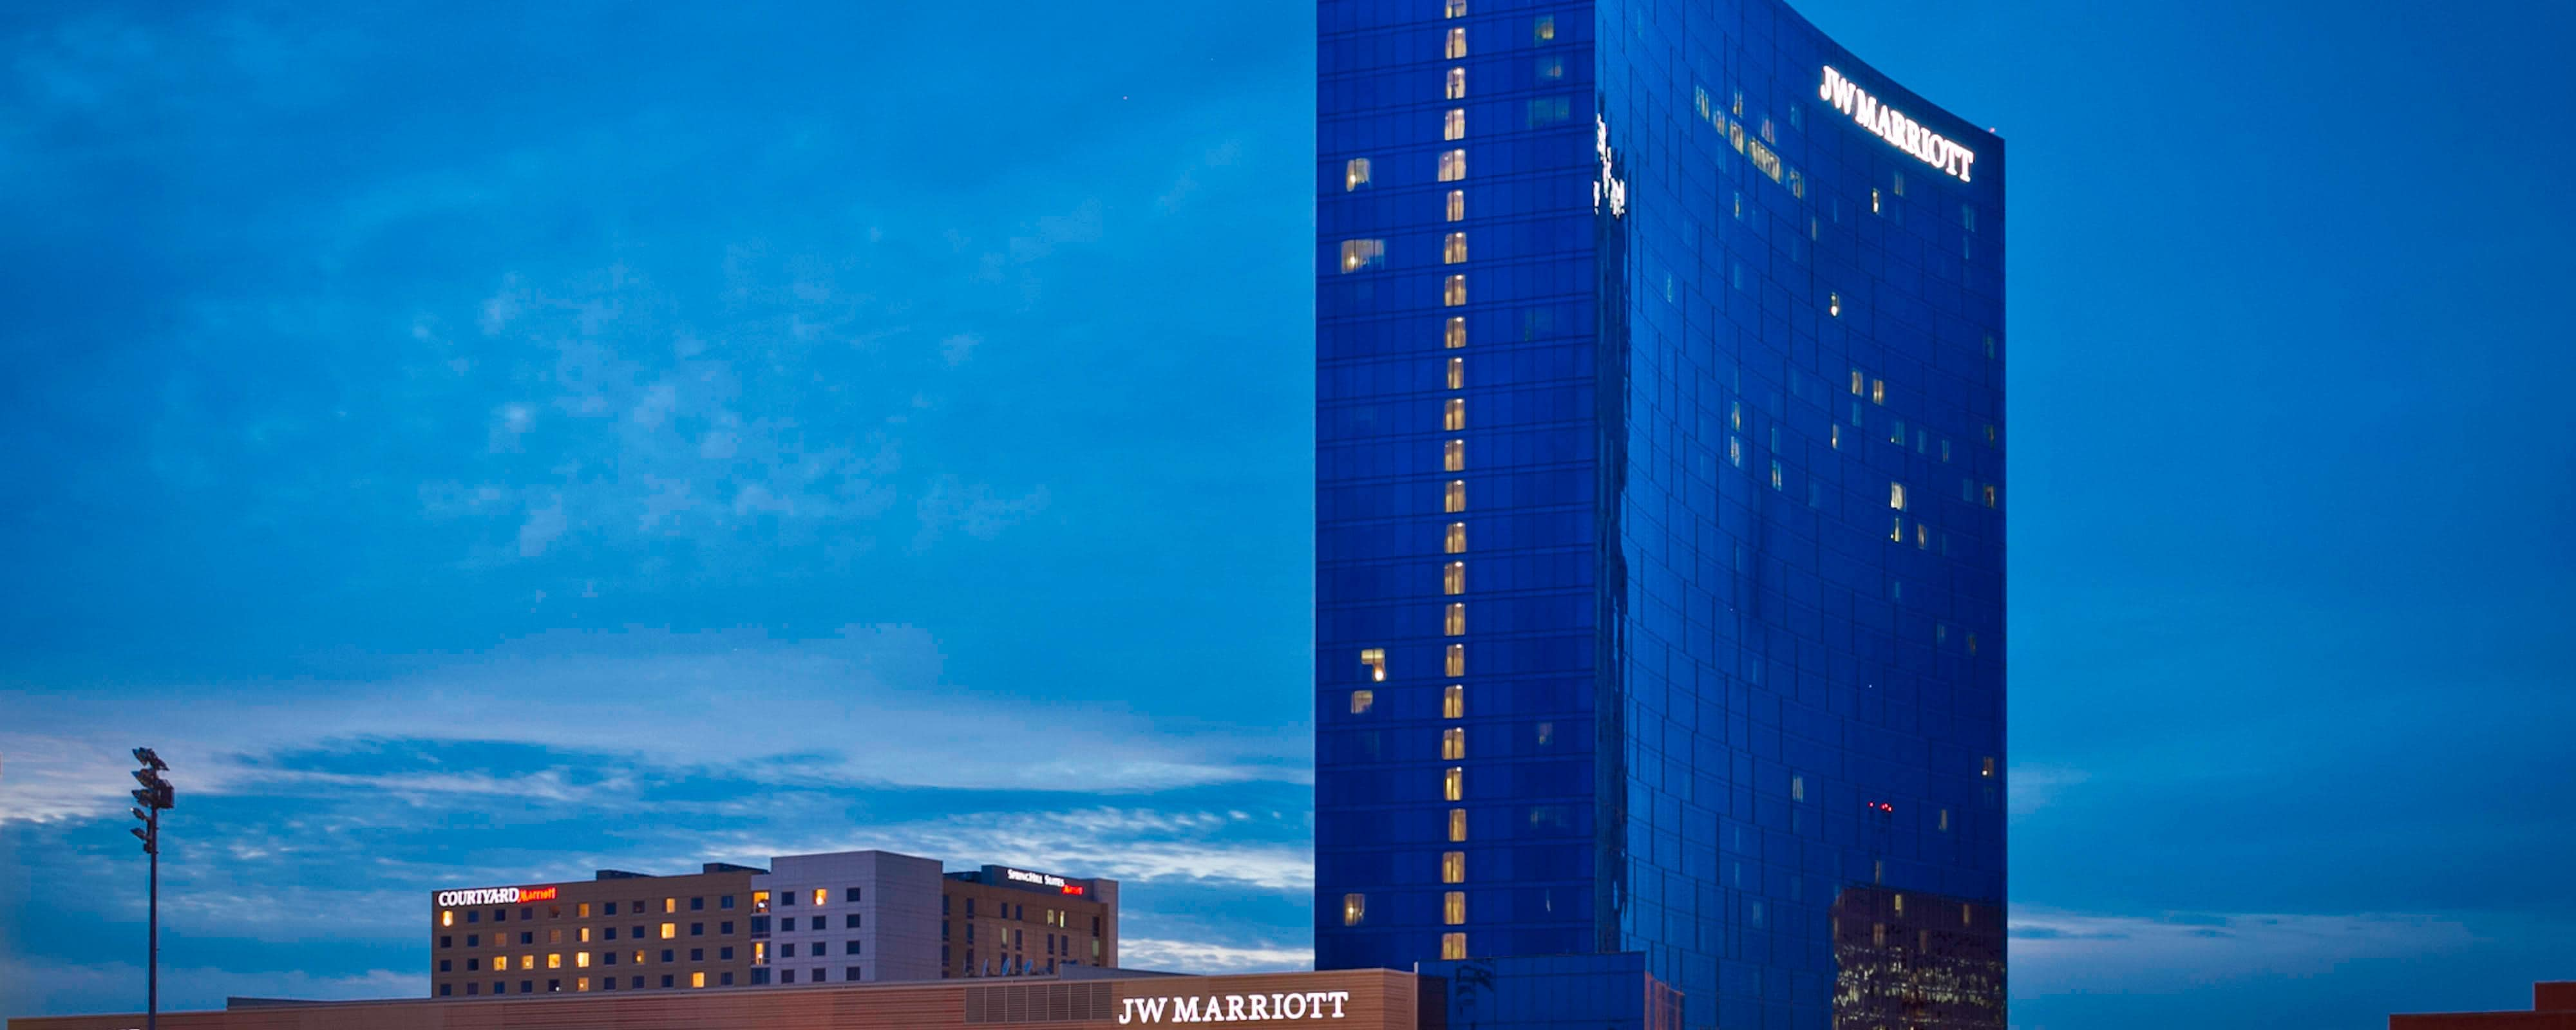 Luxury Hotels Downtown Indianapolis | JW Marriott Indianapolis on